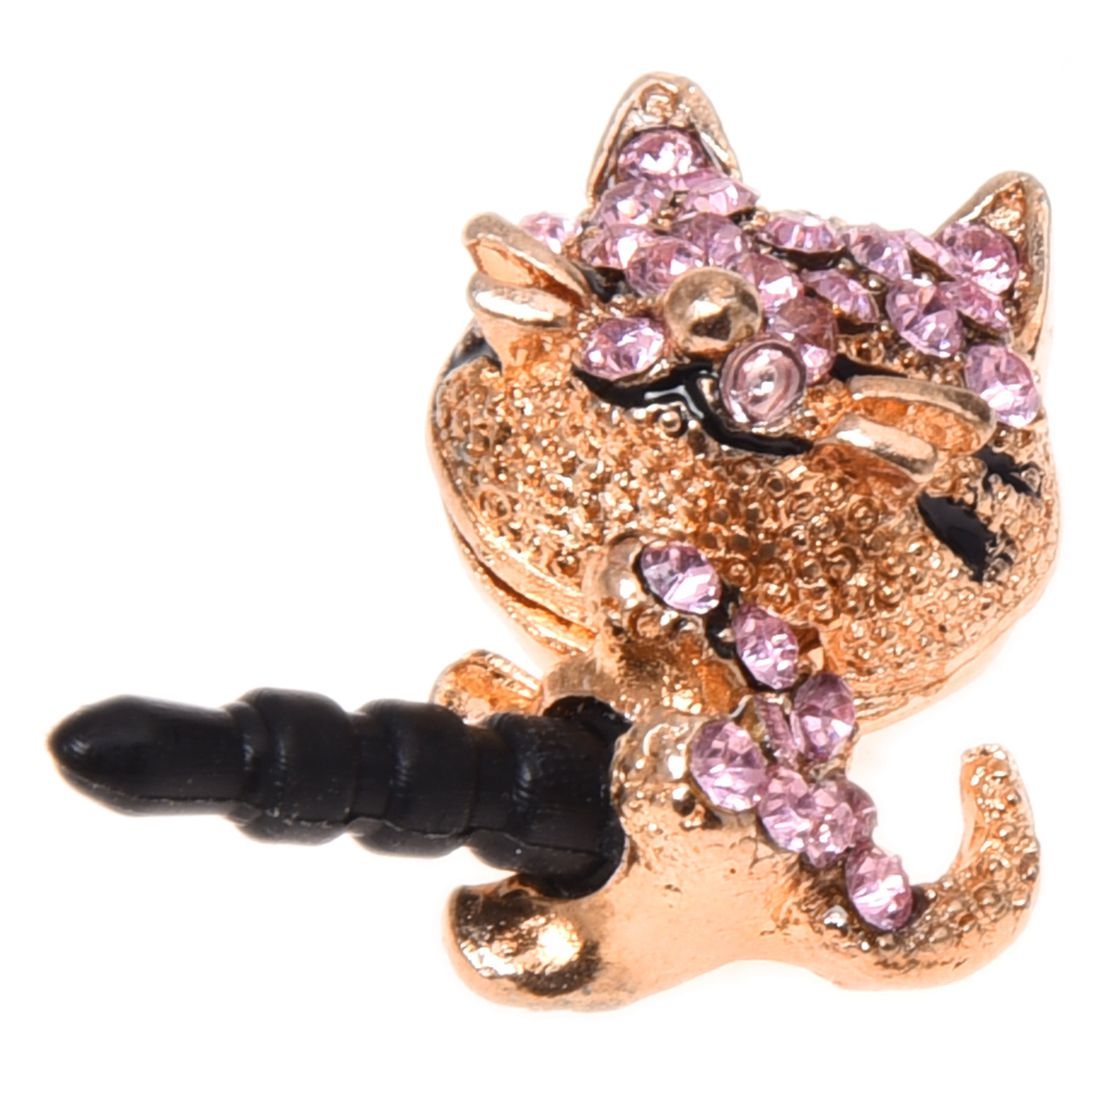 1x 3d Dust-proof Plug In The Shape Of A Cute Cat Crystal Diamond Luxurious 3.5mm Earphone Plug Dust Cap Pink Earphone Plug-hot Dust Plug